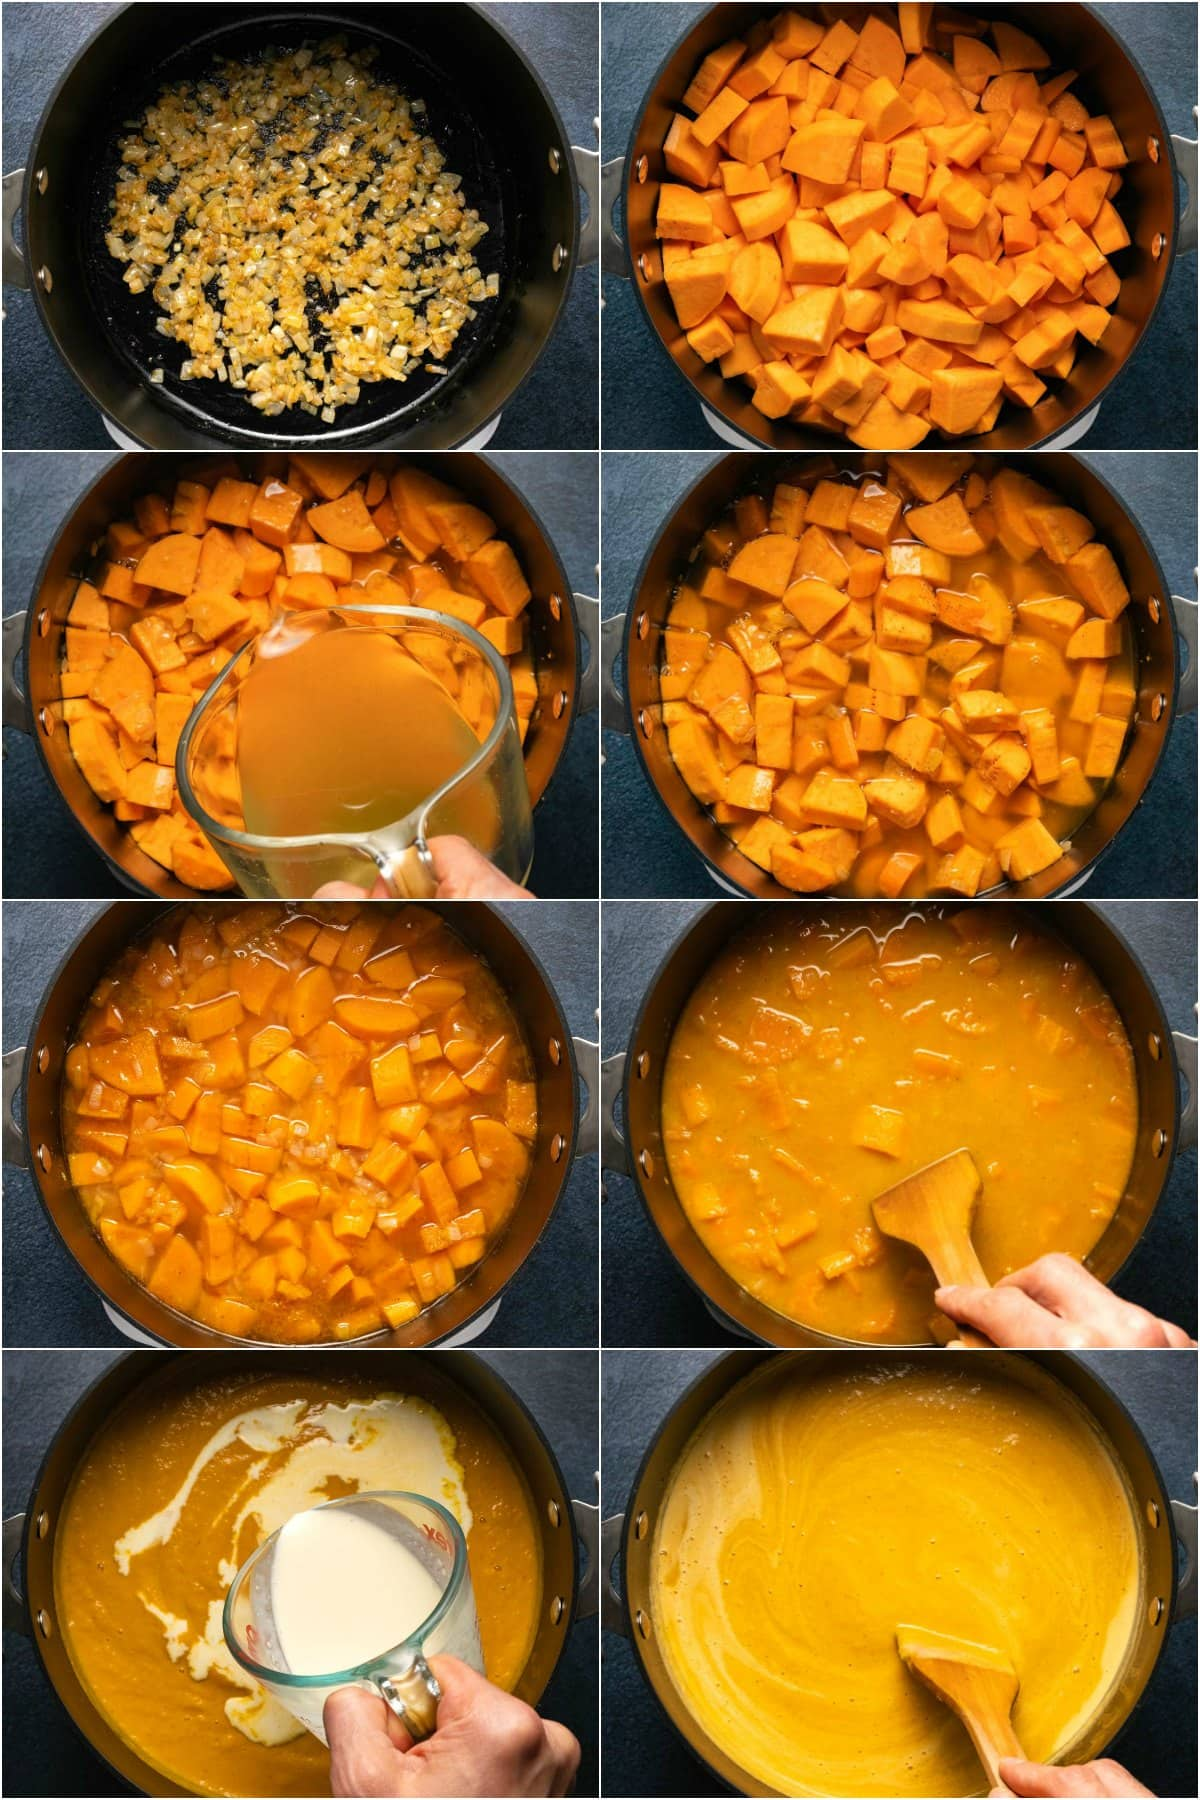 Step by step process photo collage of making sweet potato soup.